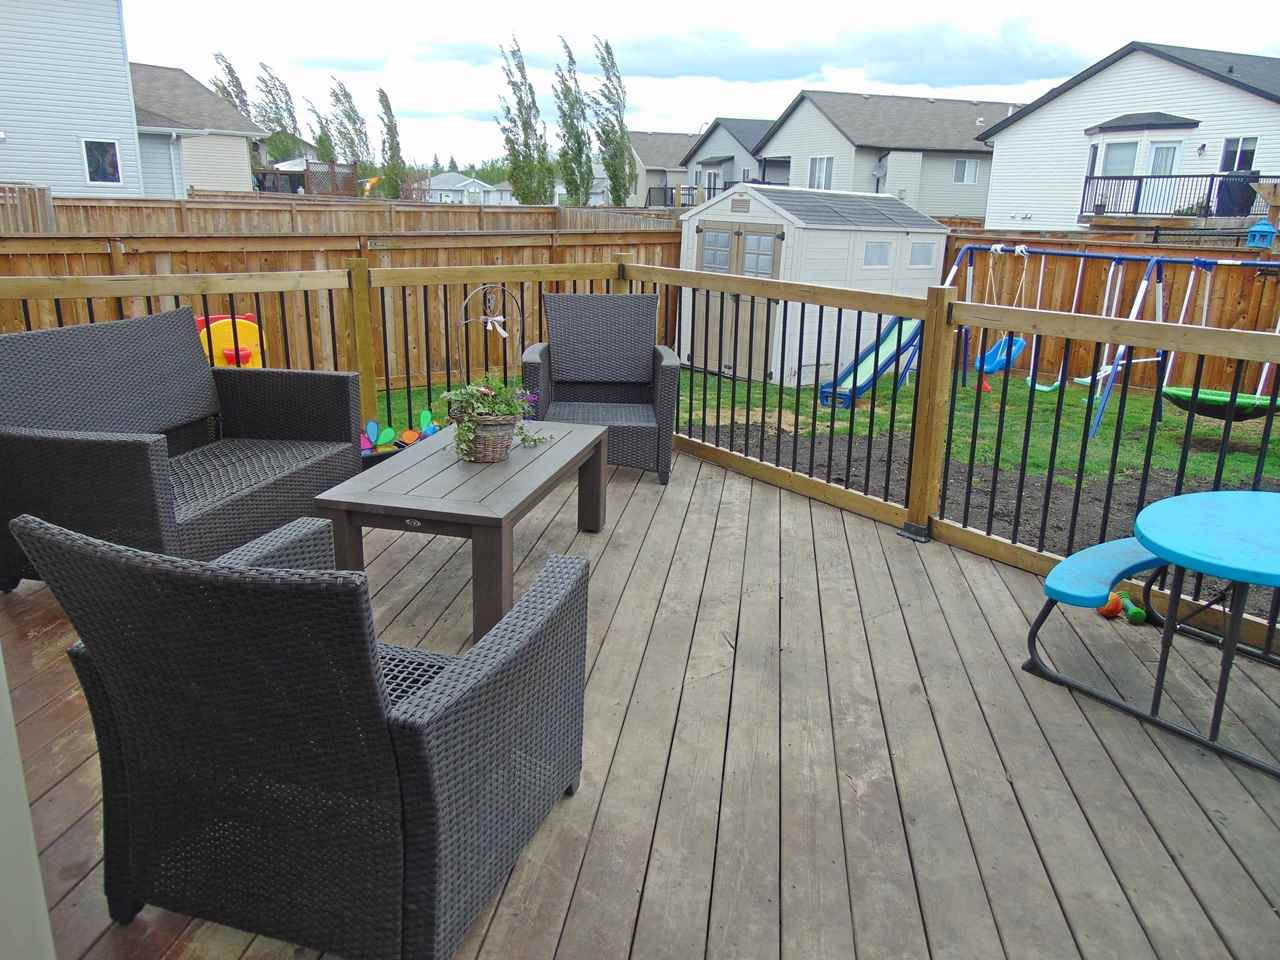 Photo 23: 5220 39 Avenue: Gibbons House for sale : MLS(r) # E4066111